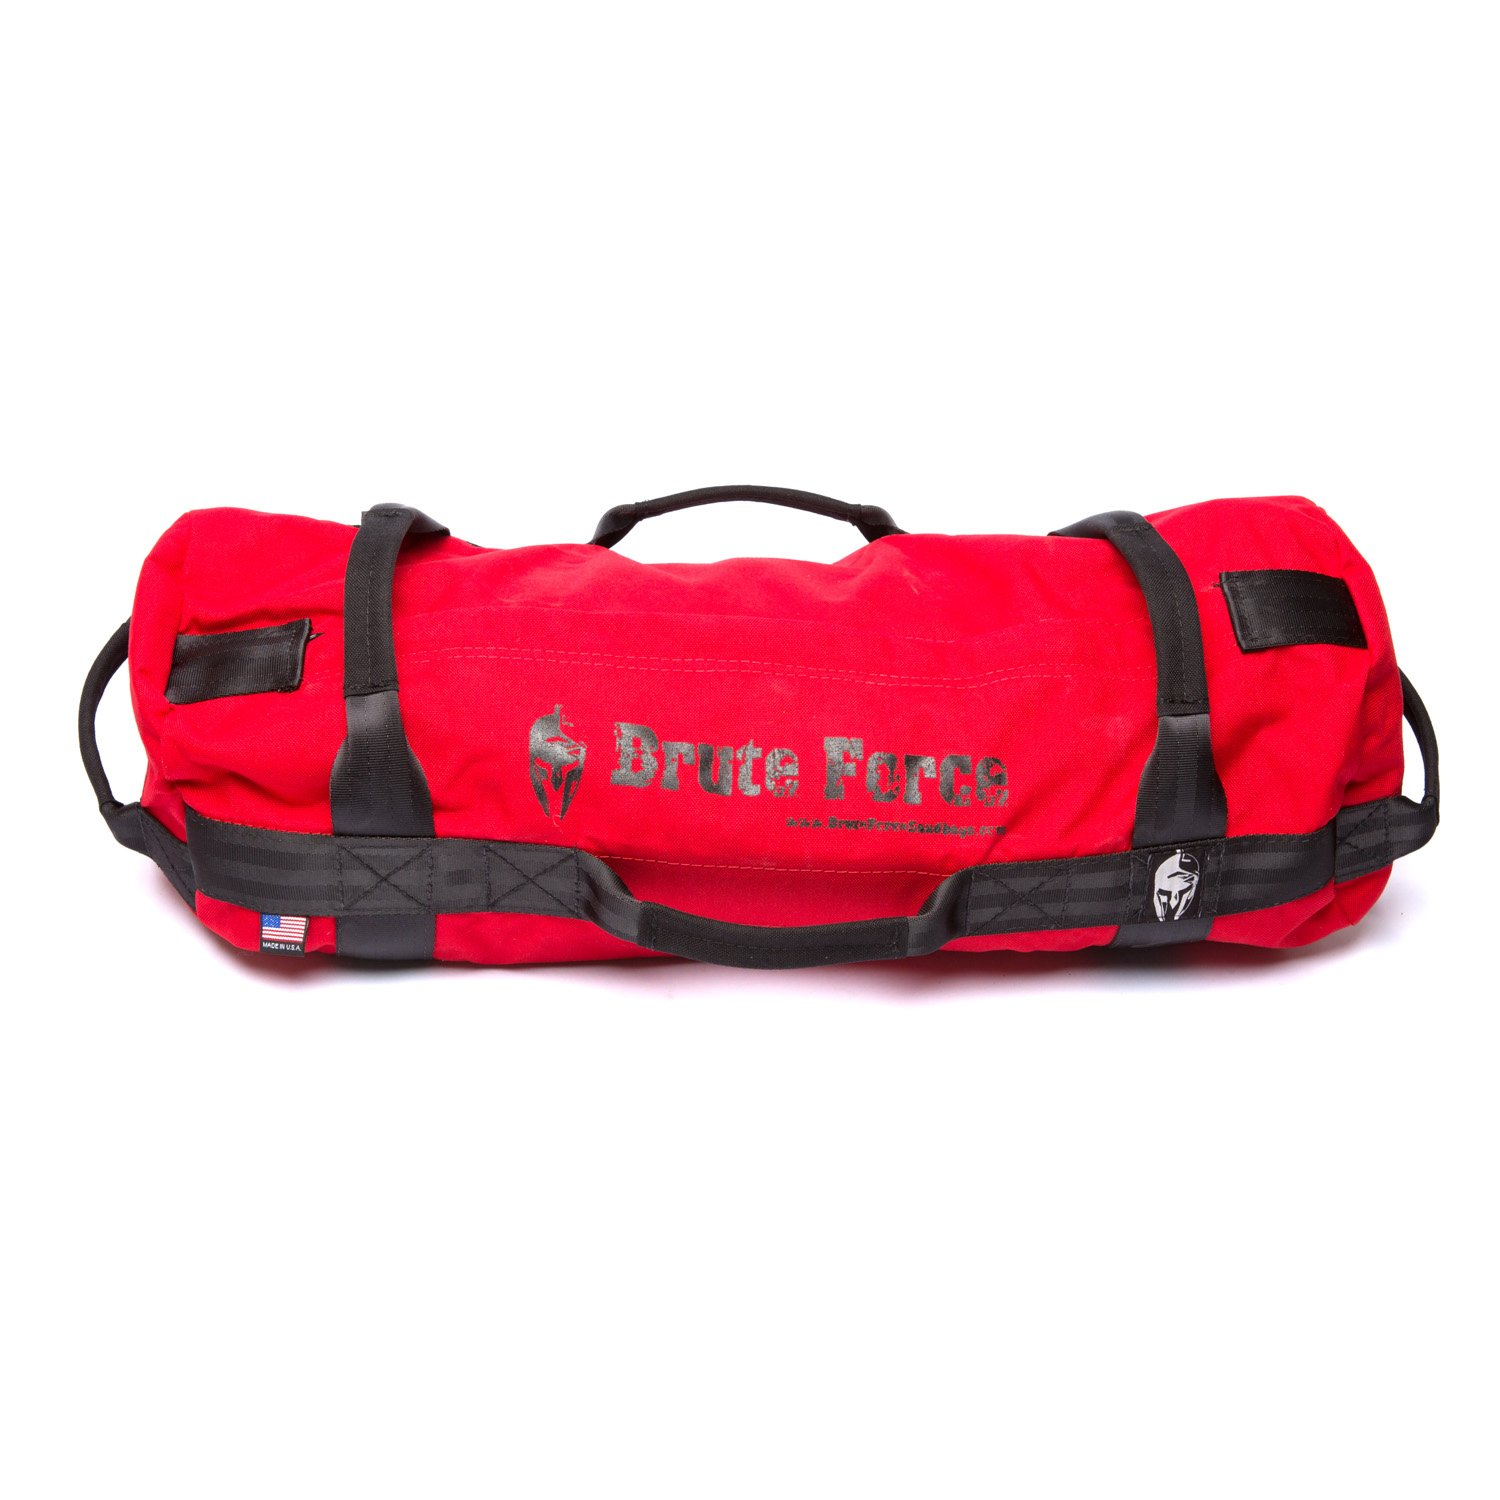 Brute Force Sandbags - Athlete Sandbag - Red - Super Sandbag Heavy Duty Trining Weight Bag Core Athletic Sandbag Workout System 8 Handle Sandbag